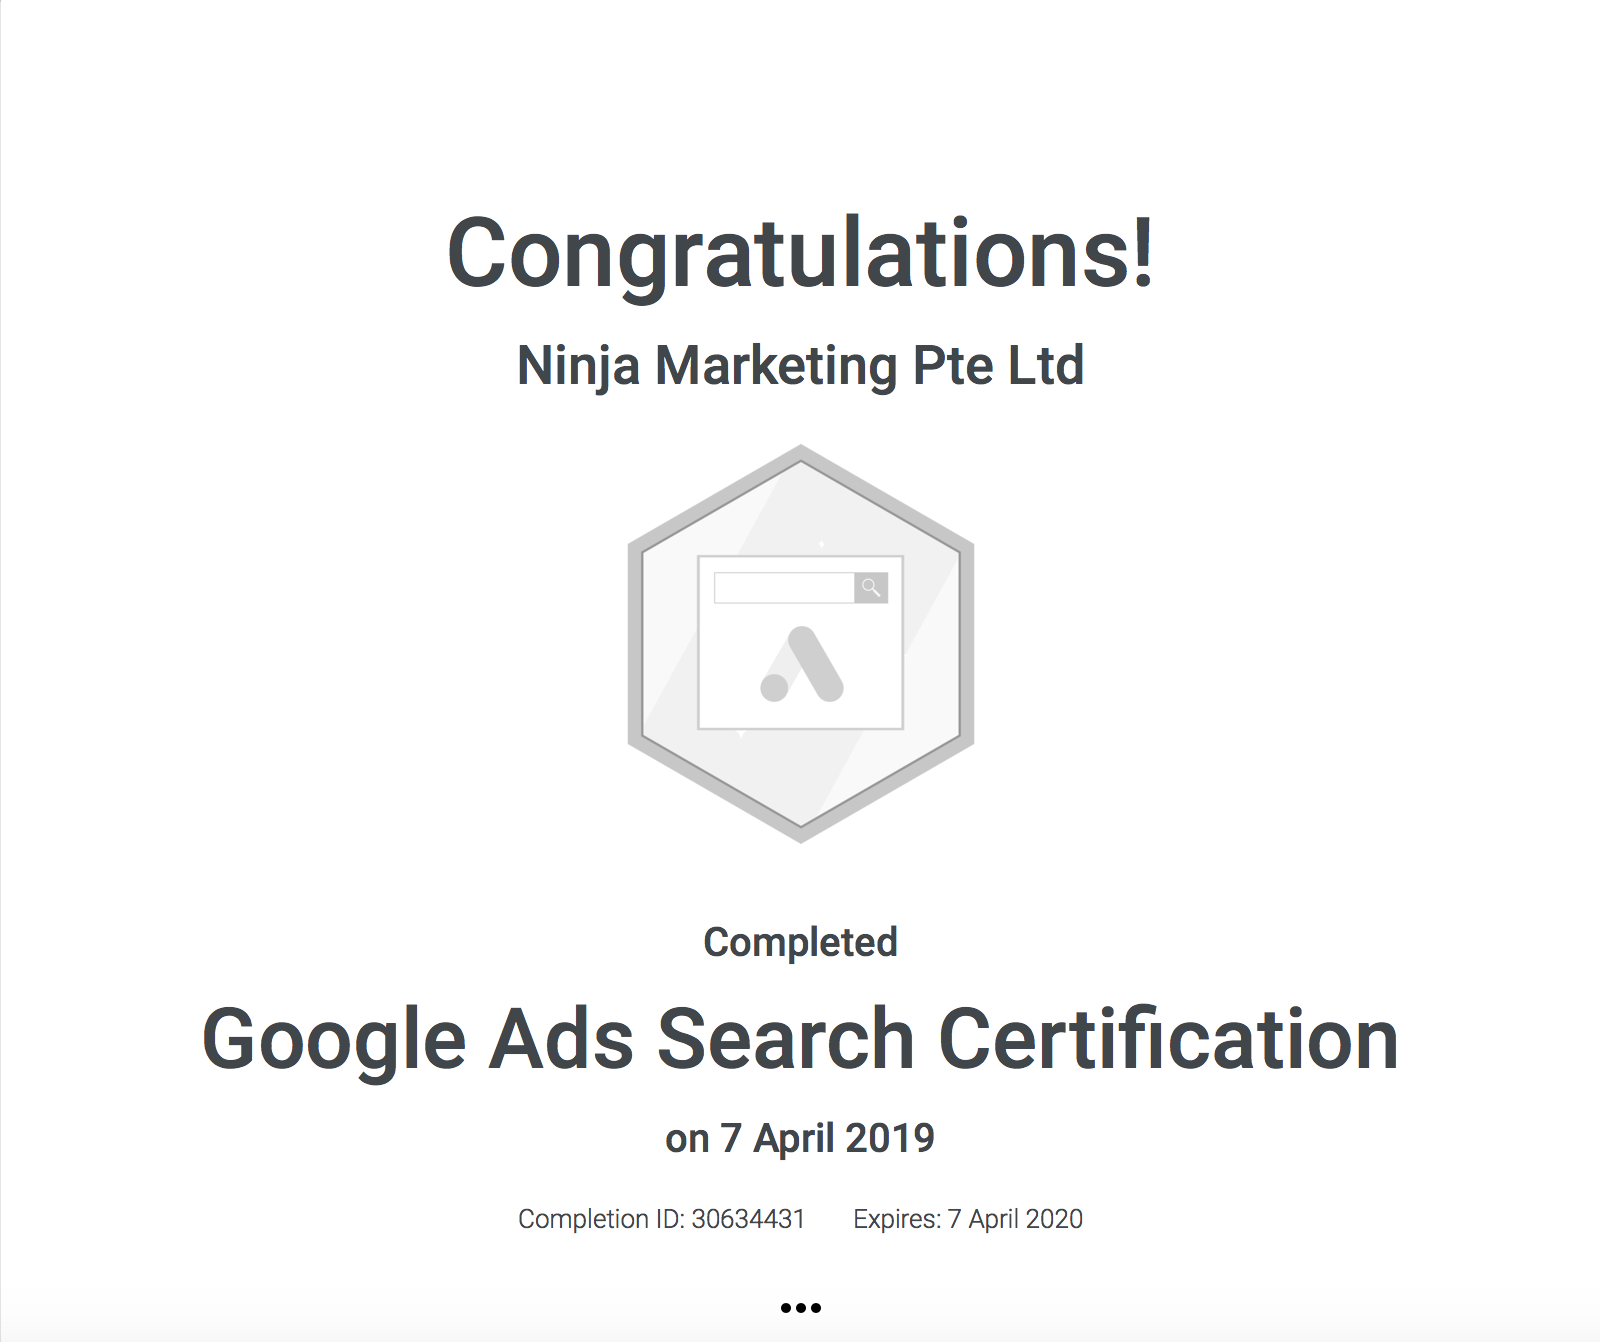 Ninja Marketing - Google AdWords Search Certification